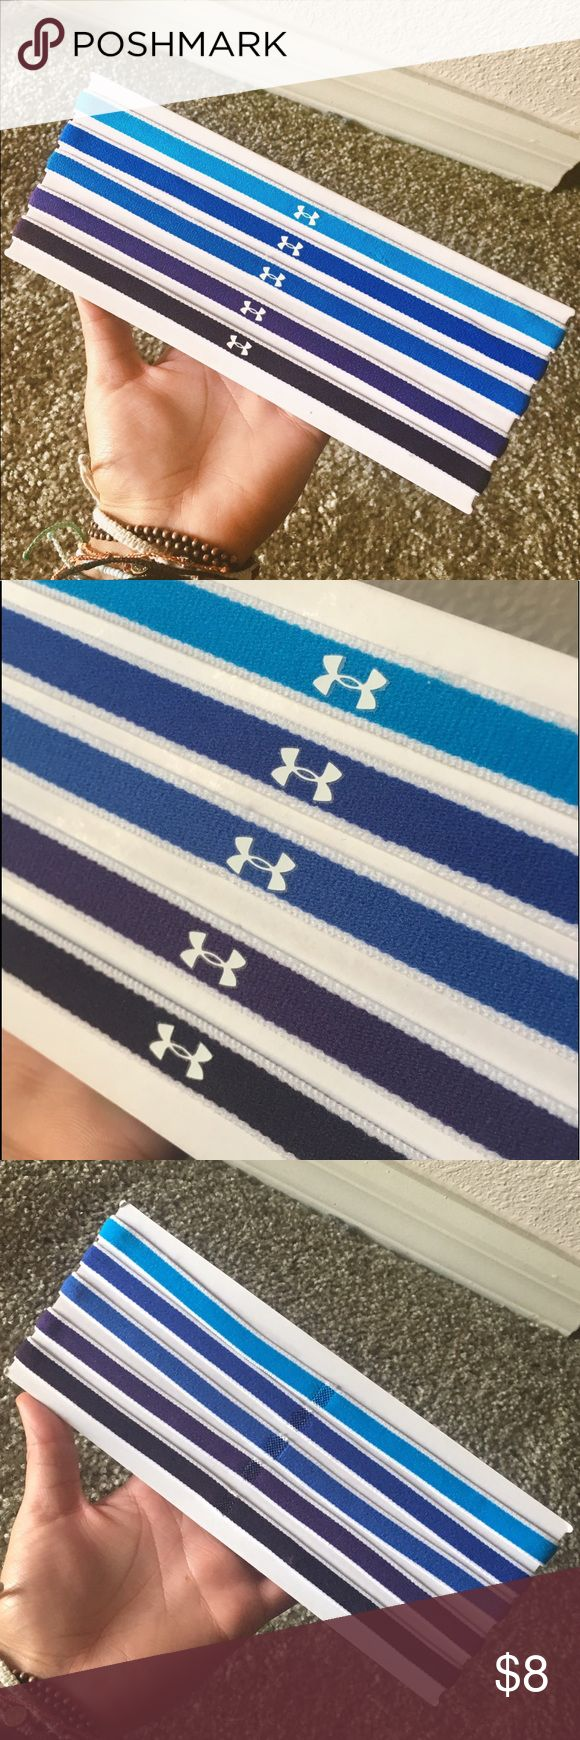 Under Armour Women's Headbands 6 pack NEW & UNUSED 5 pack of Under Armour headbands, multi shades ranging from bright blue to deep indigo. On the go and need a quick fix for your hair? Just pop on one of these babies and you're are ready to take on the day without the hassle of those pesky flyaways!💁🏽🏃🏽‍♀️👟   • Feel free to offer! Most prices are negotiable • Bundle your items to save! 5% off 2+ • I do not trade • Fast shipping! Same or next day Any questions? Just message me! Under…